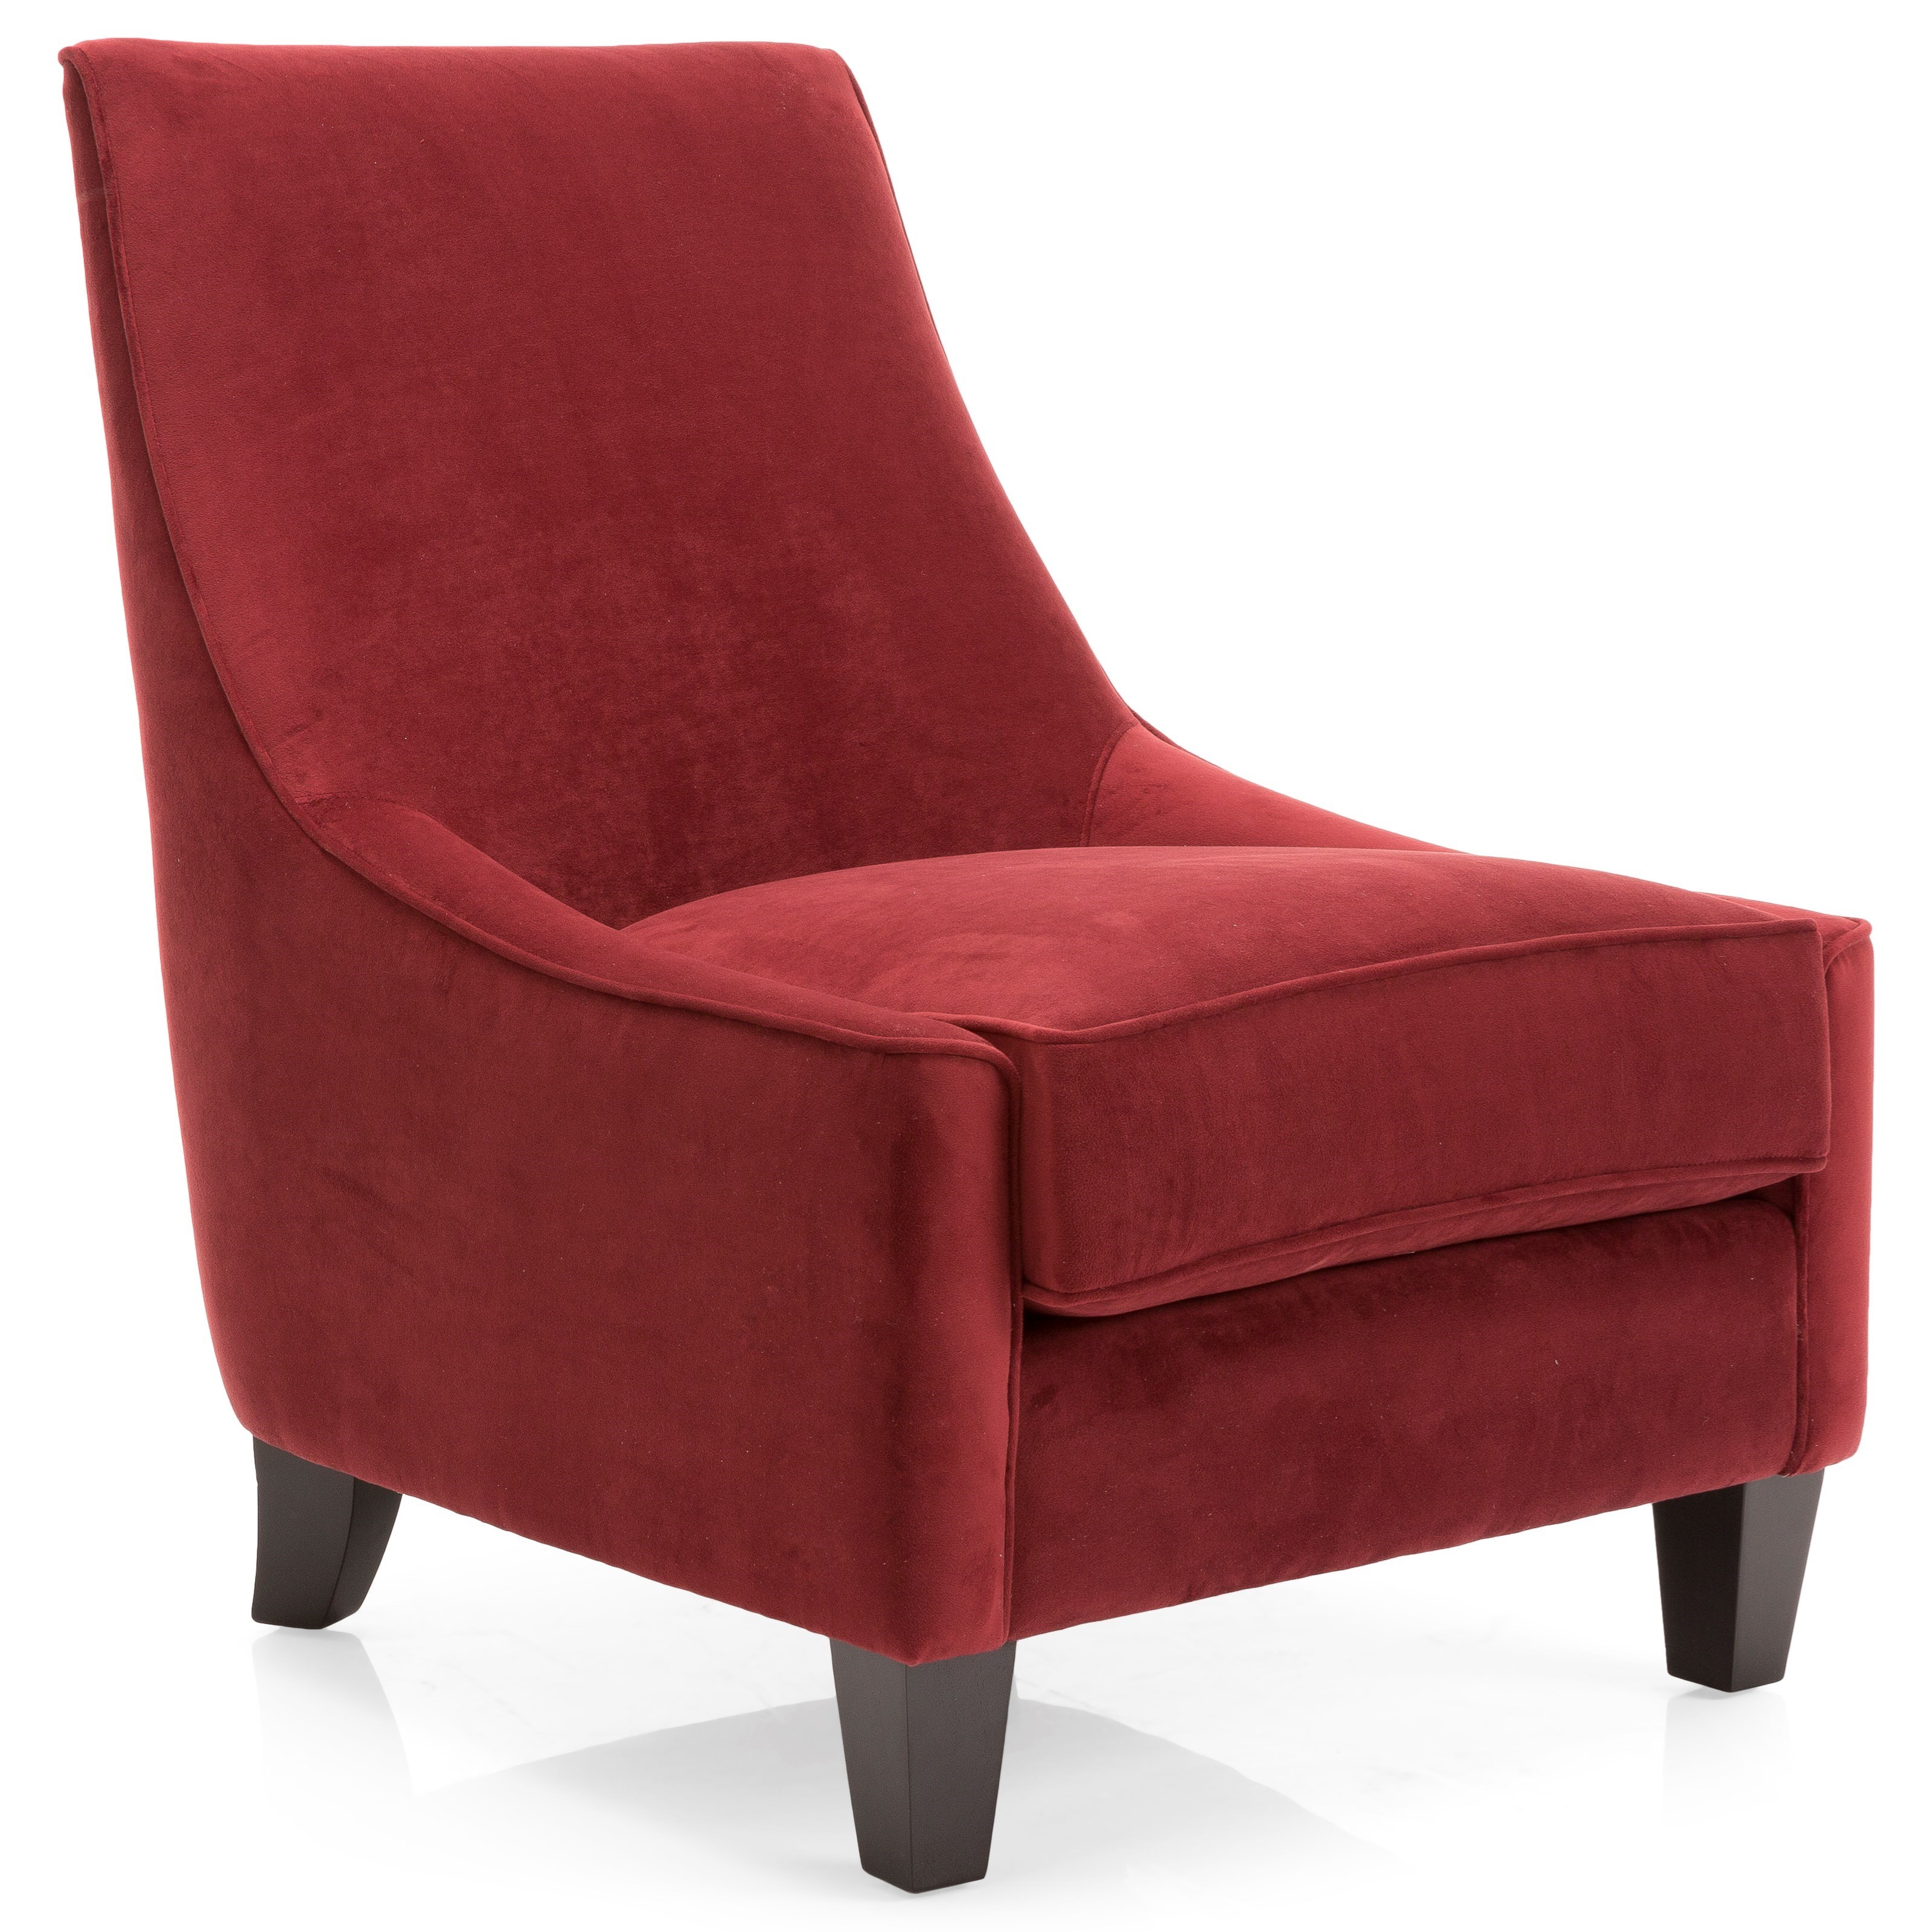 7731 Chair by Decor-Rest at Upper Room Home Furnishings